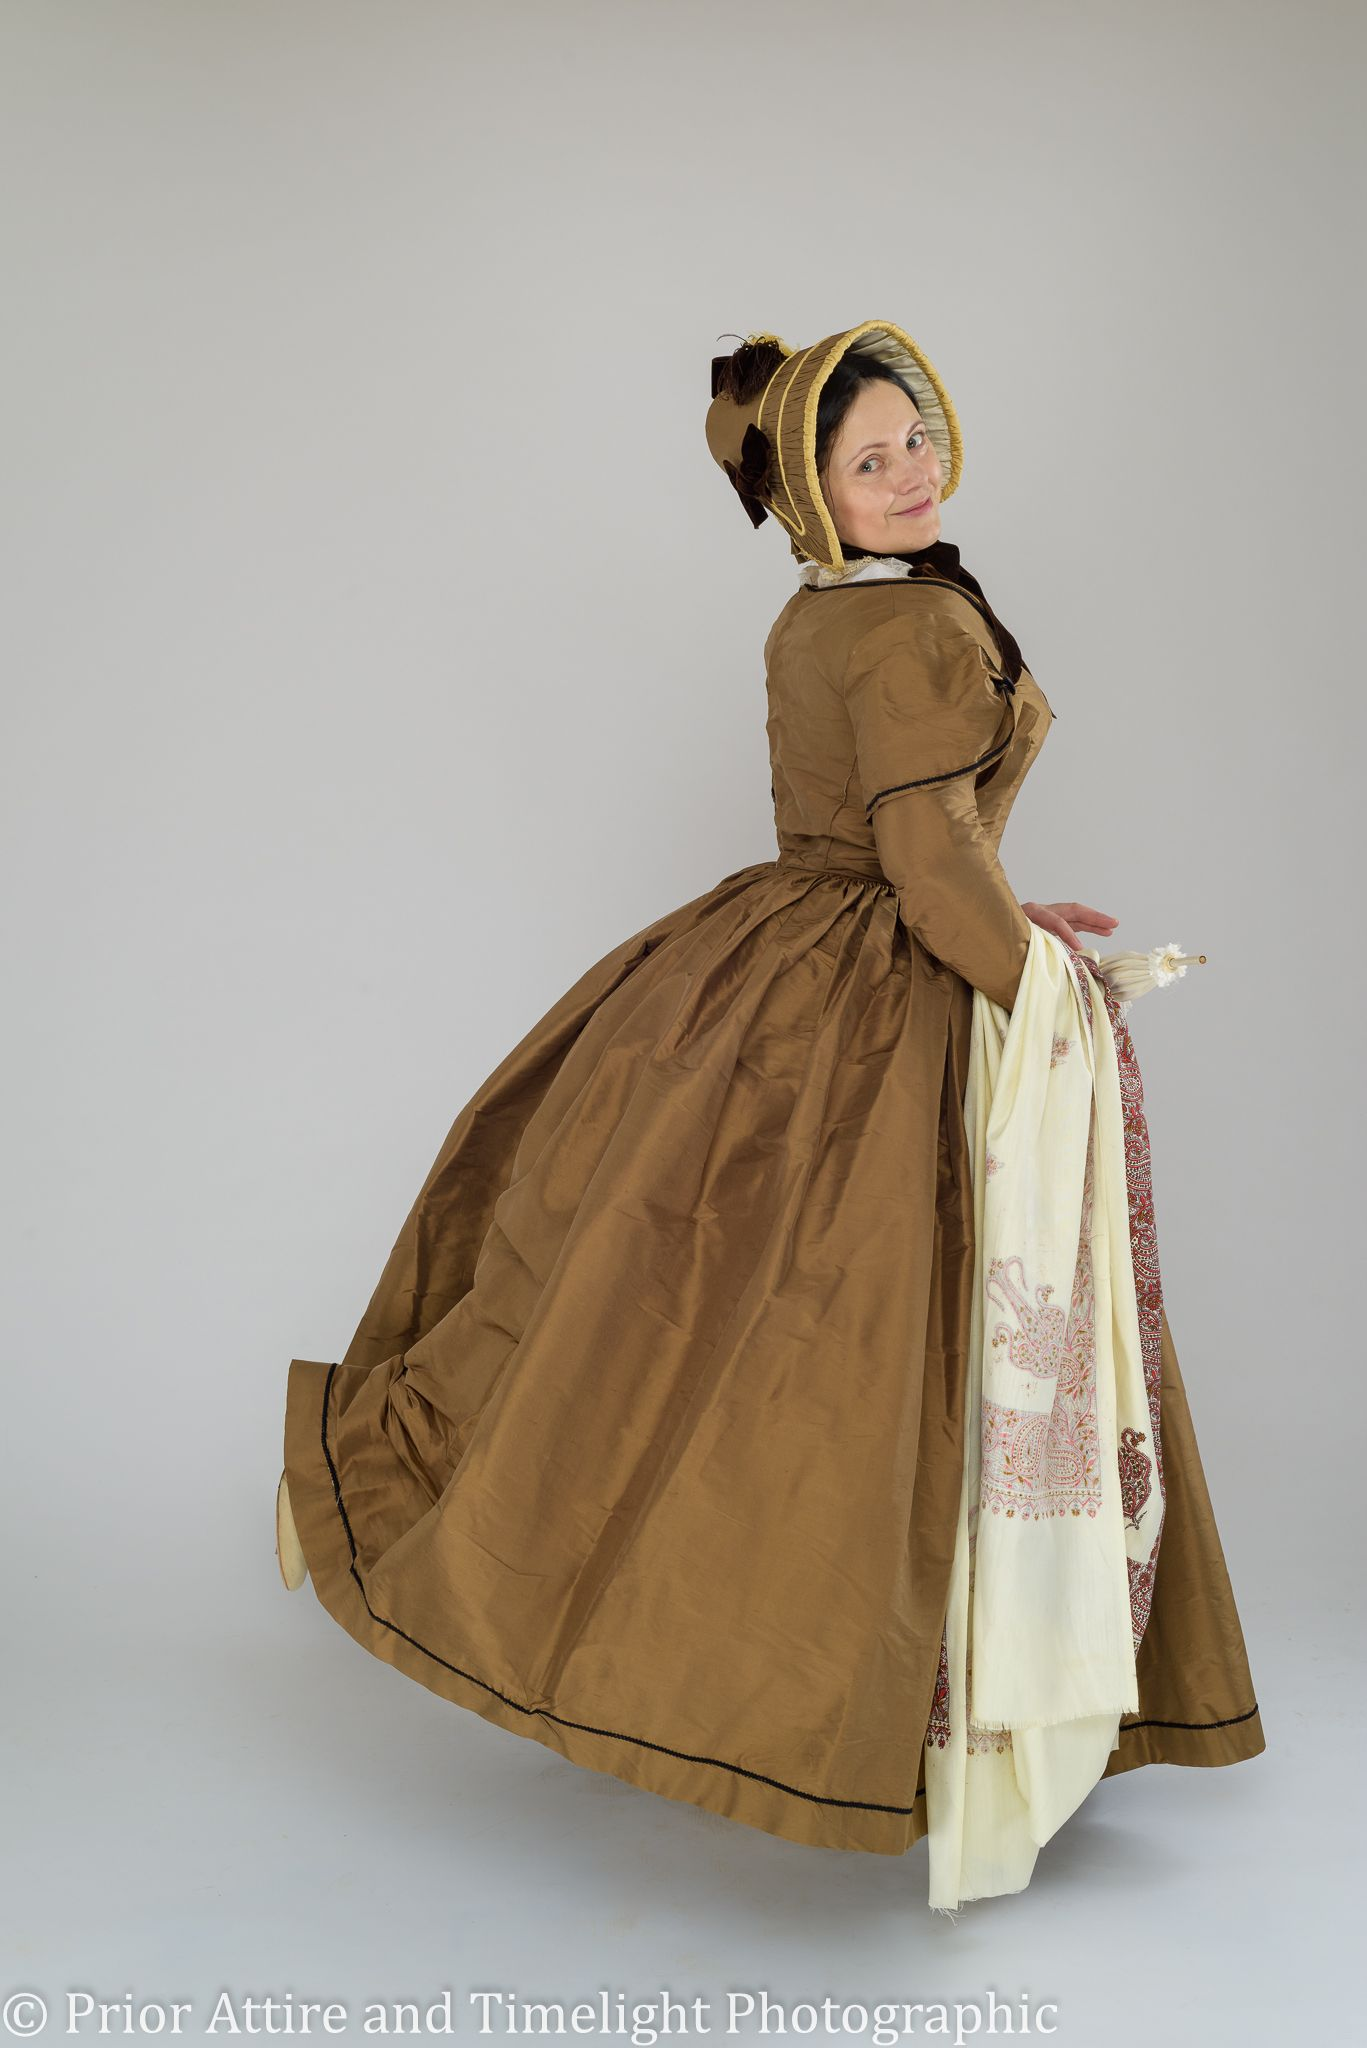 1840s day dress by Prior Attire. Construction and pattern